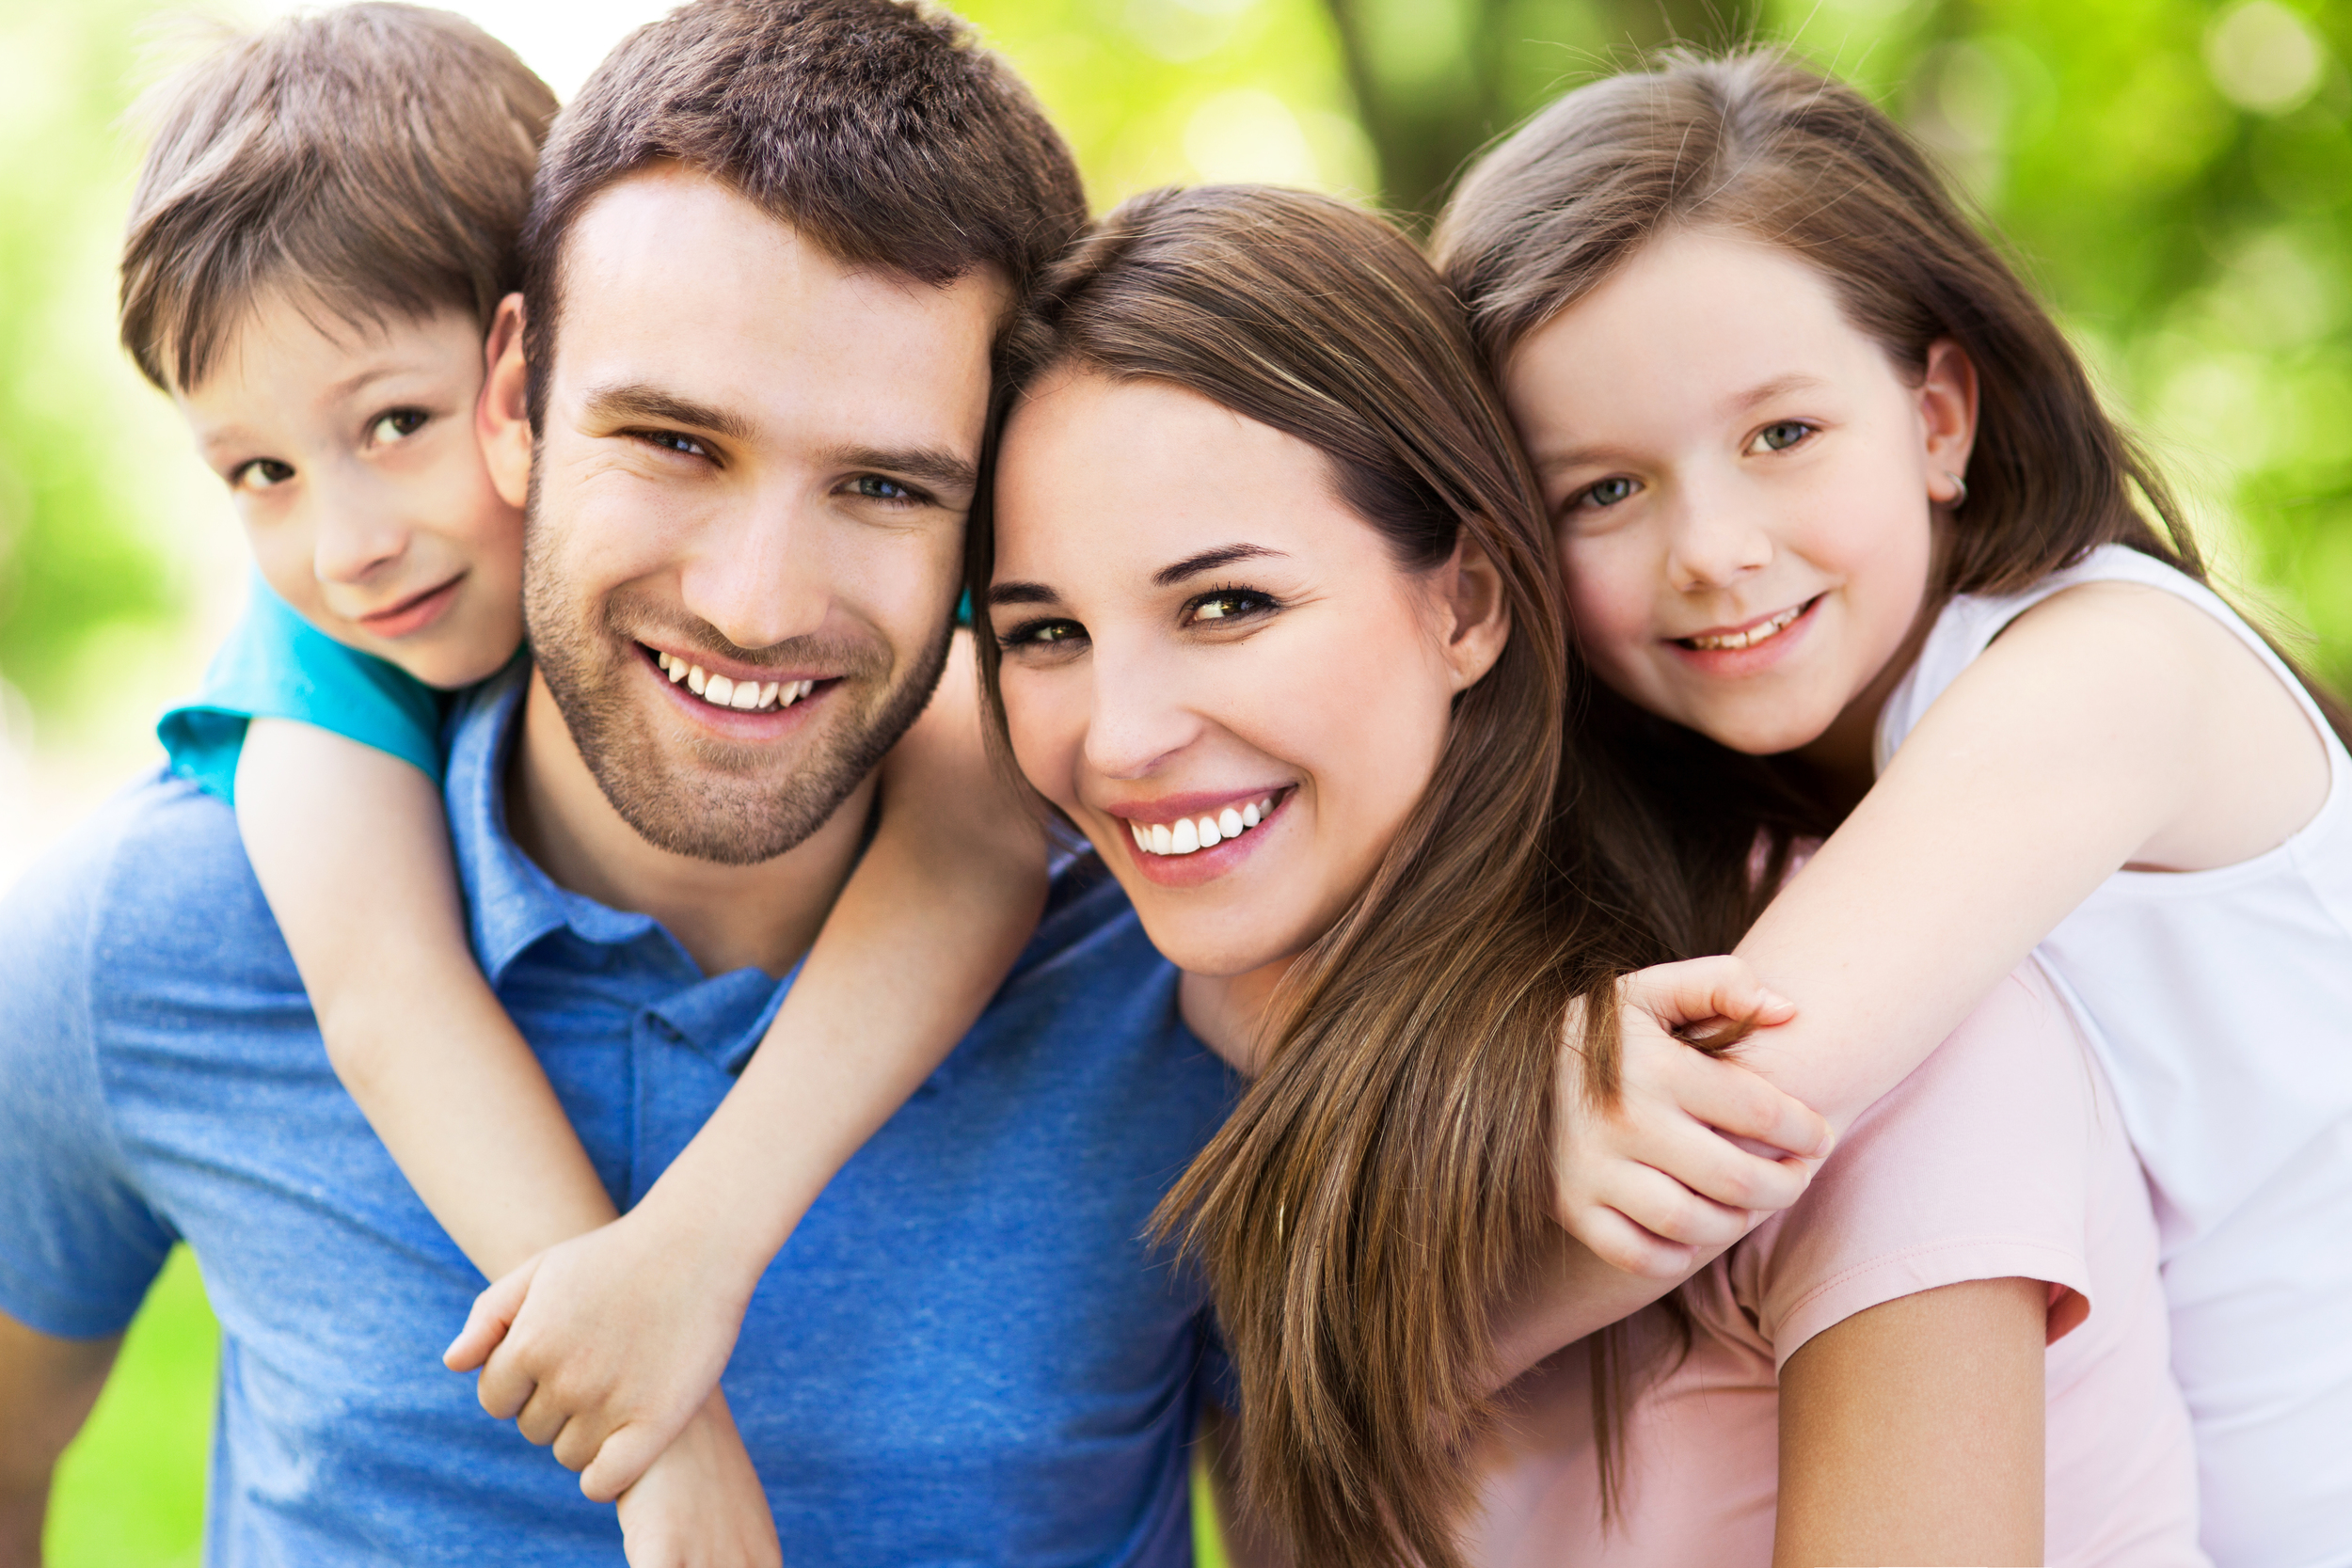 8 to 8 Dental Care provides family services for your entire family.